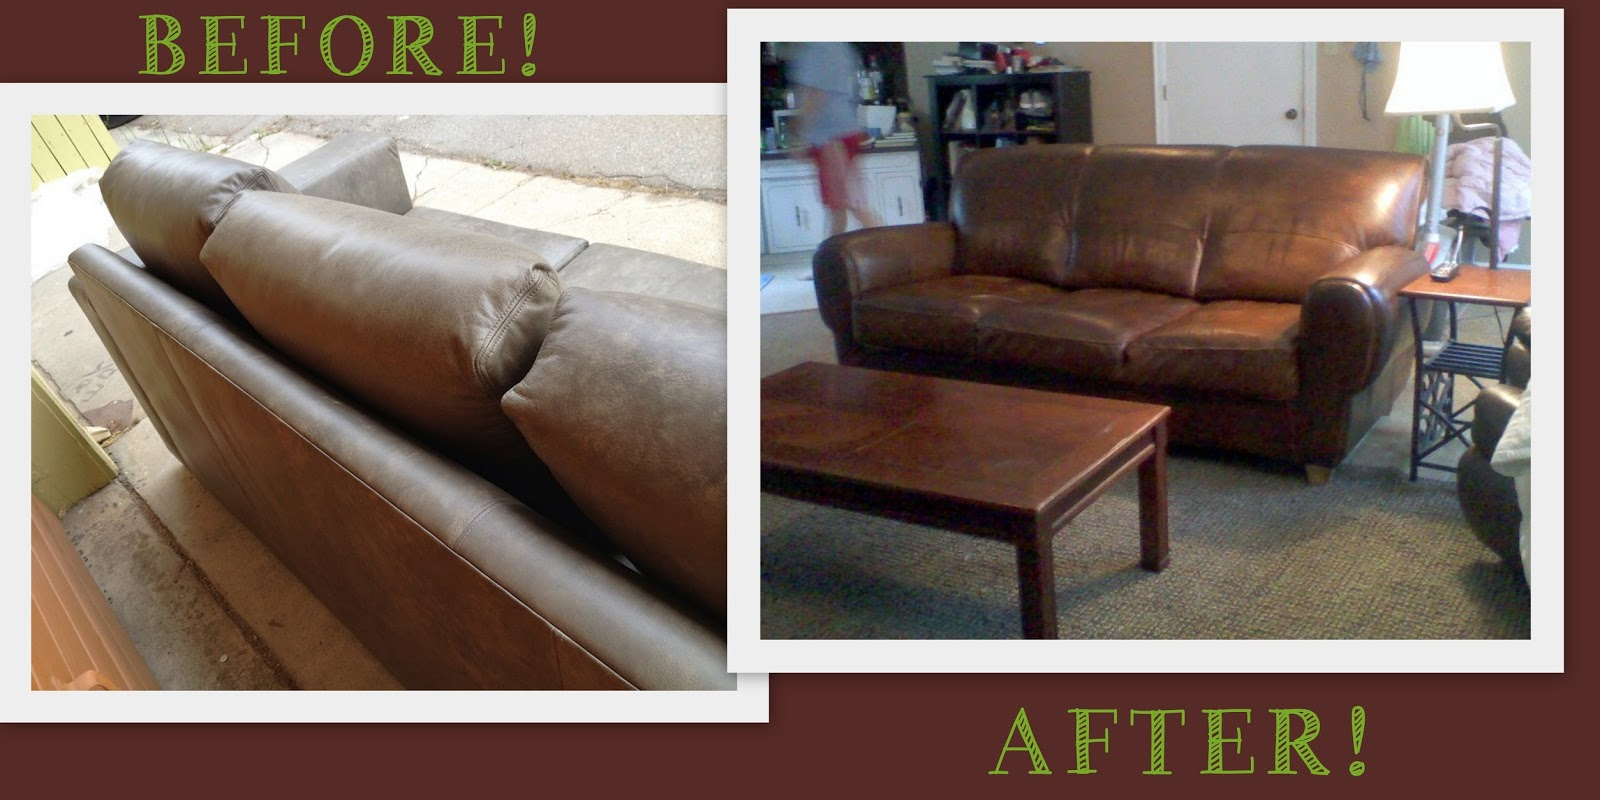 restoring leather sofa colour burgundy sleeper weeds how to dye or stain furniture